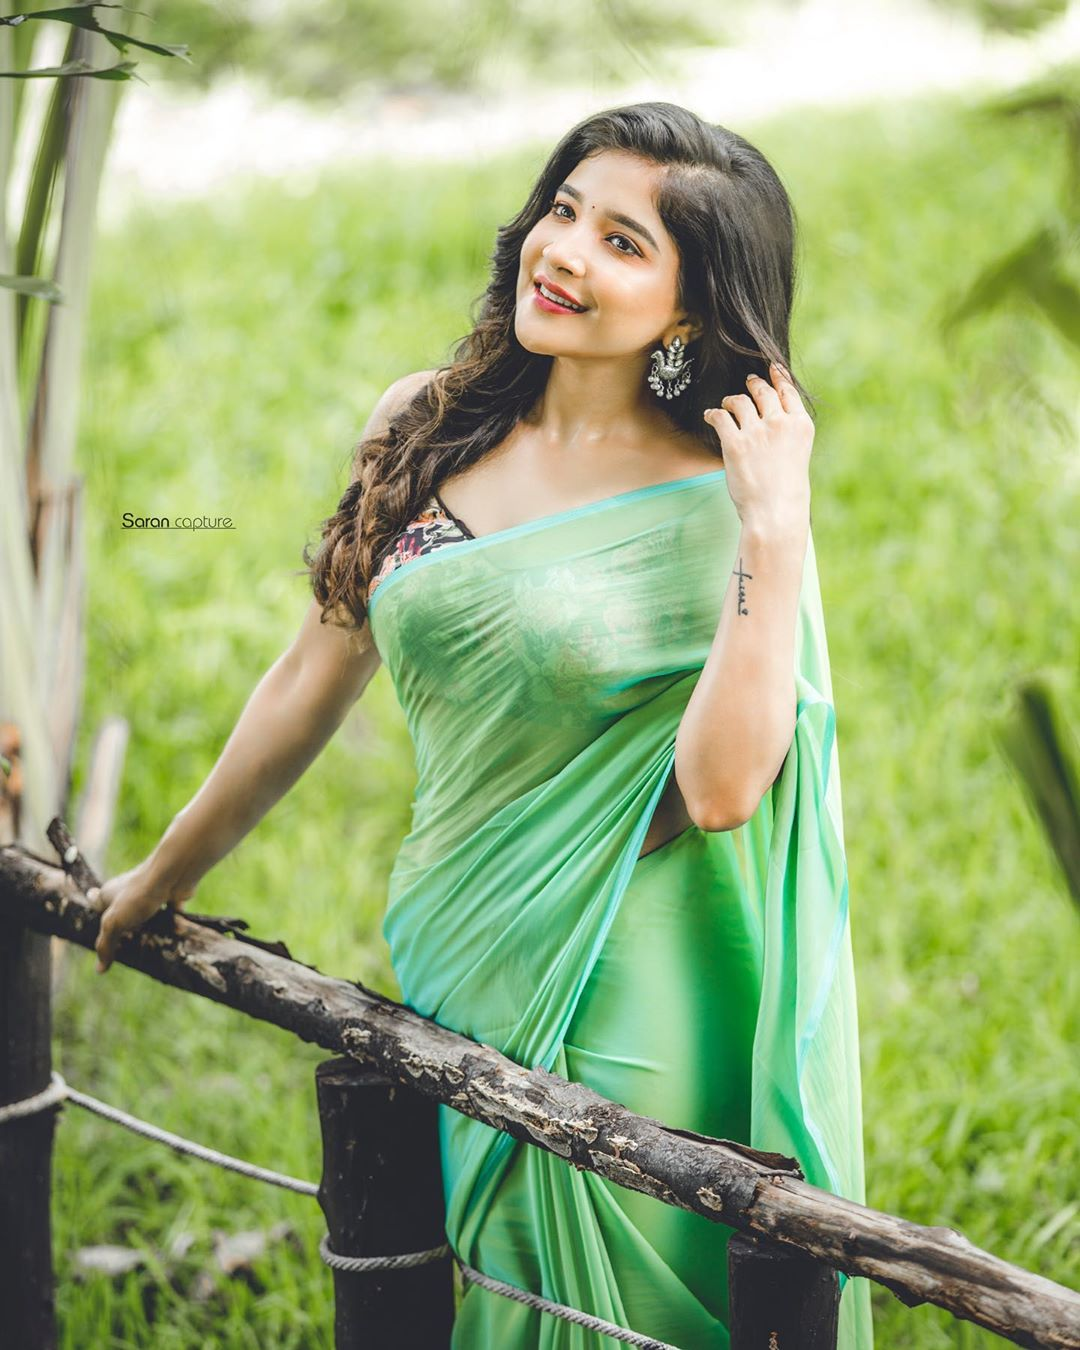 South Indian Actress Sakshi Agarwal Exposing Hot In Green Saree Photos Hd Images Pictures Stills First Look Posters Of South Indian Actress Sakshi Agarwal Exposing Hot In Green Saree Movie Mallurepost Com